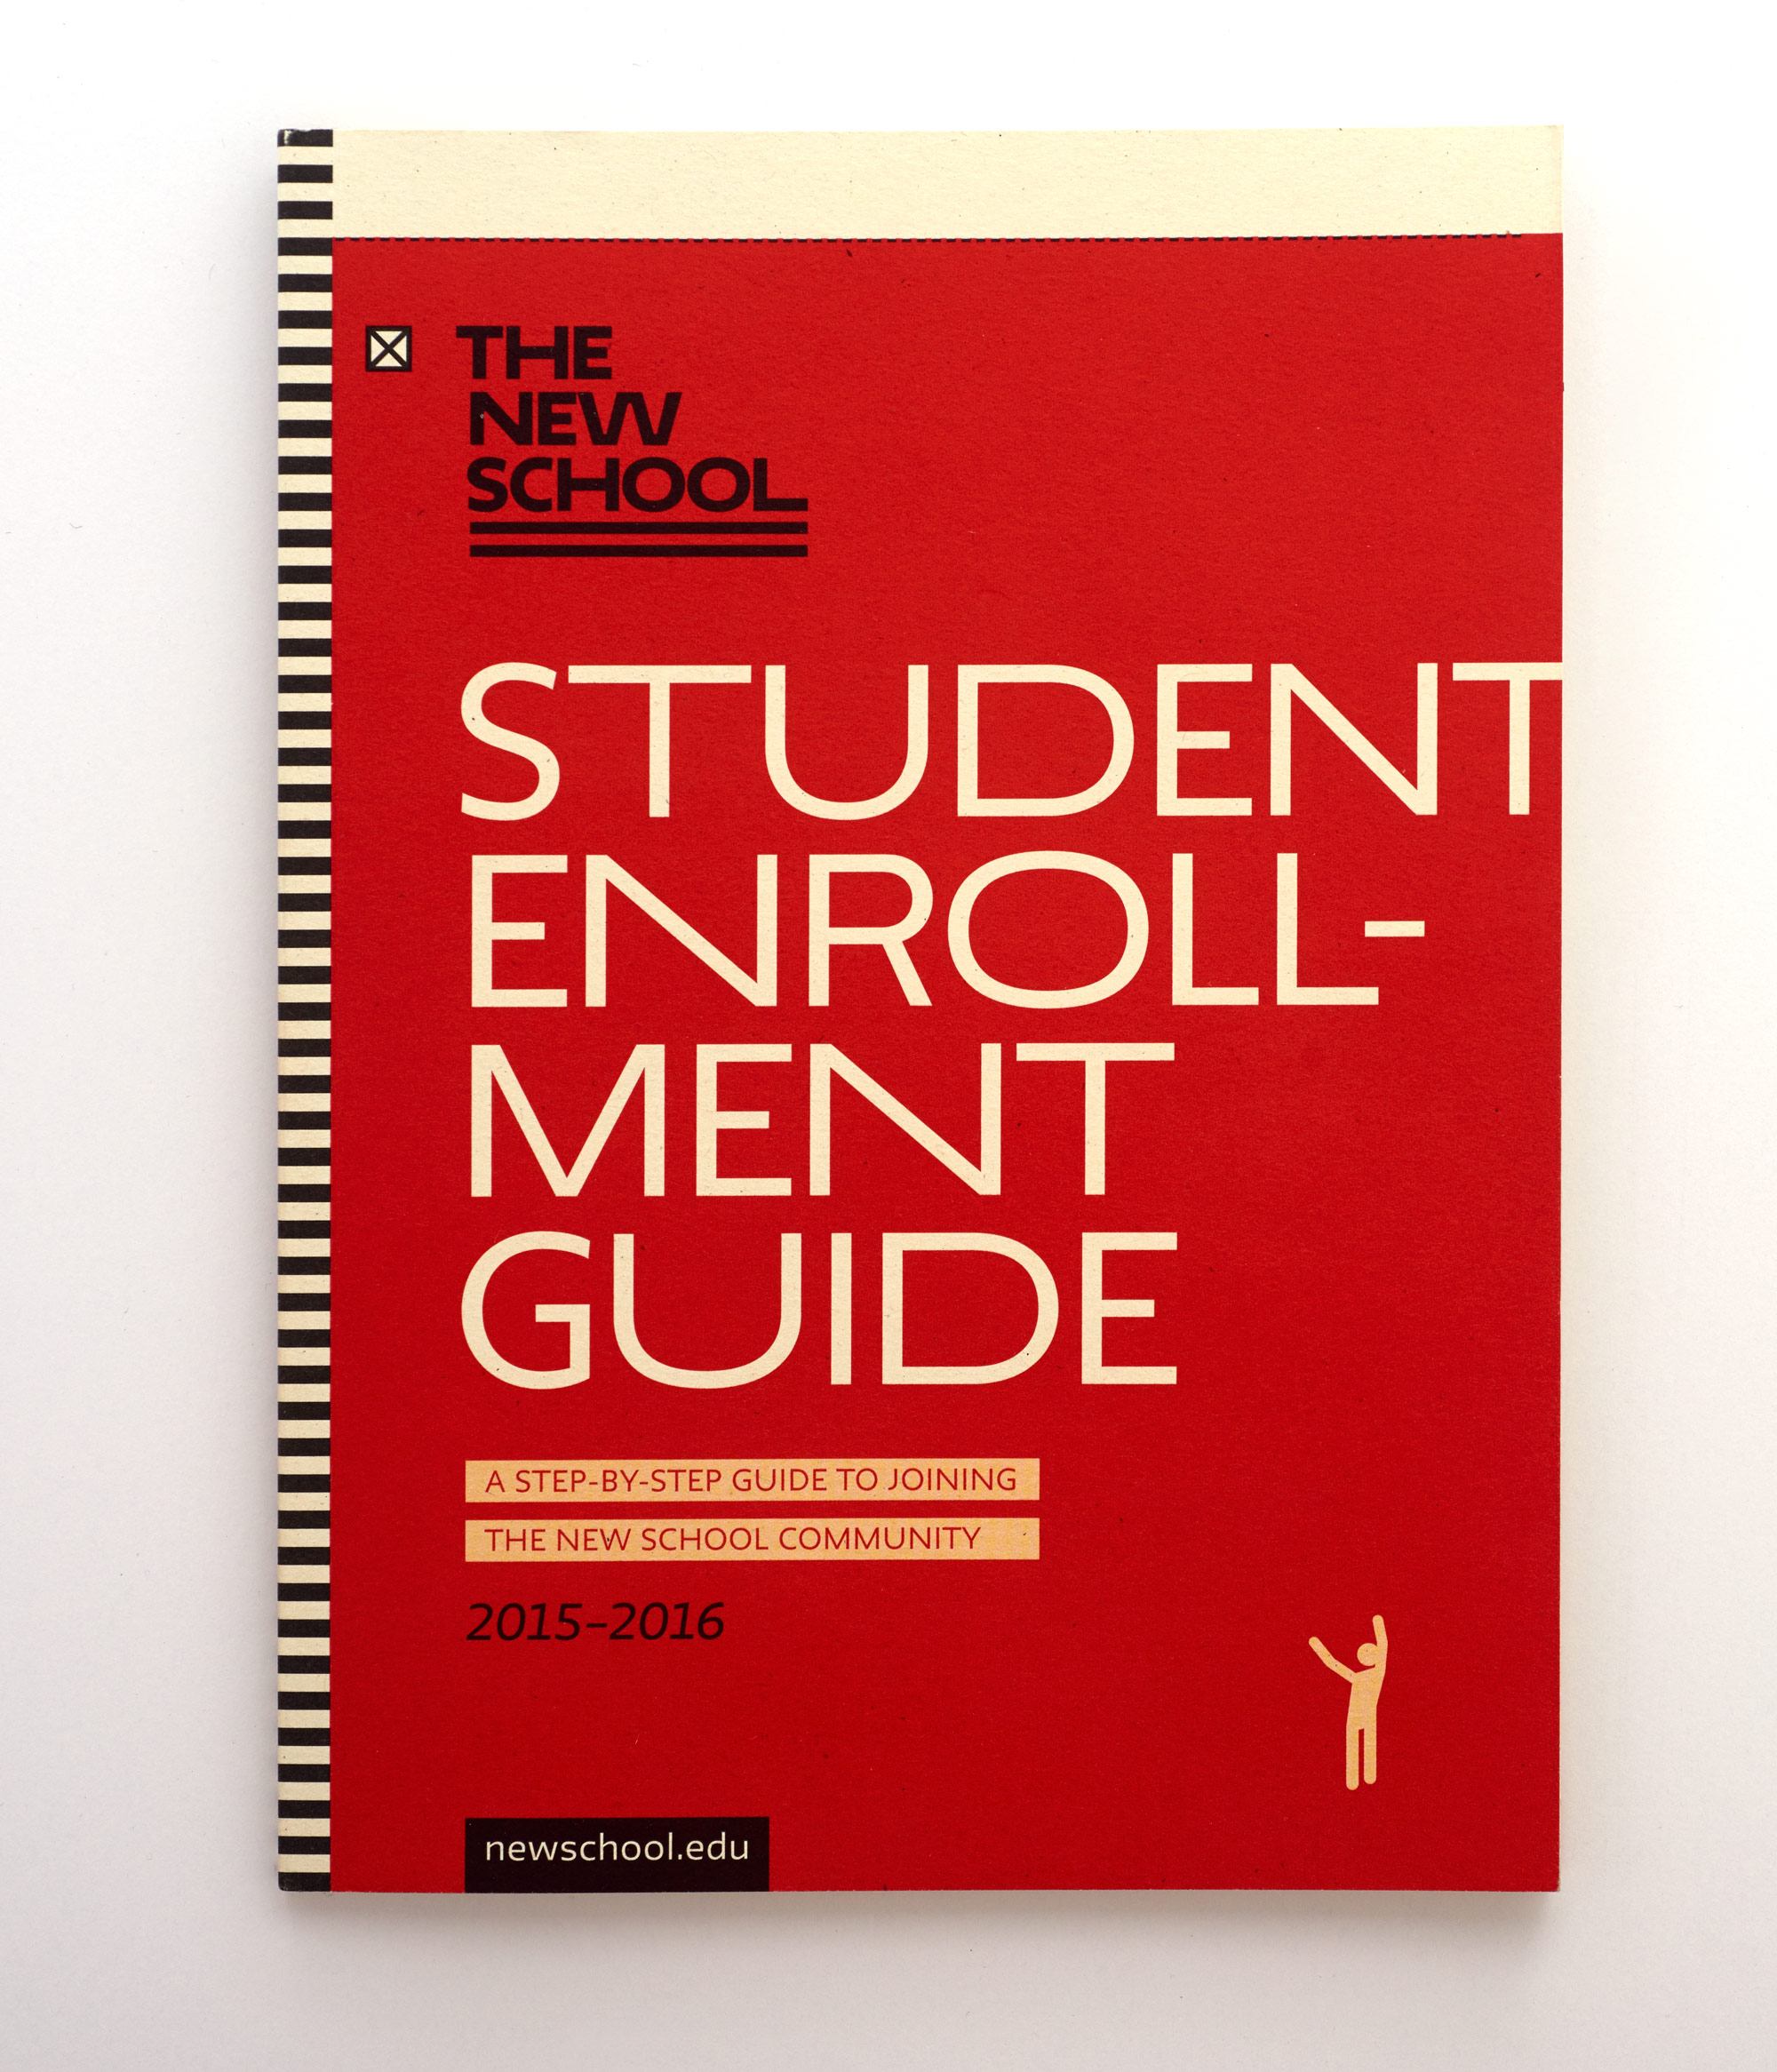 New School Enrollment Guide